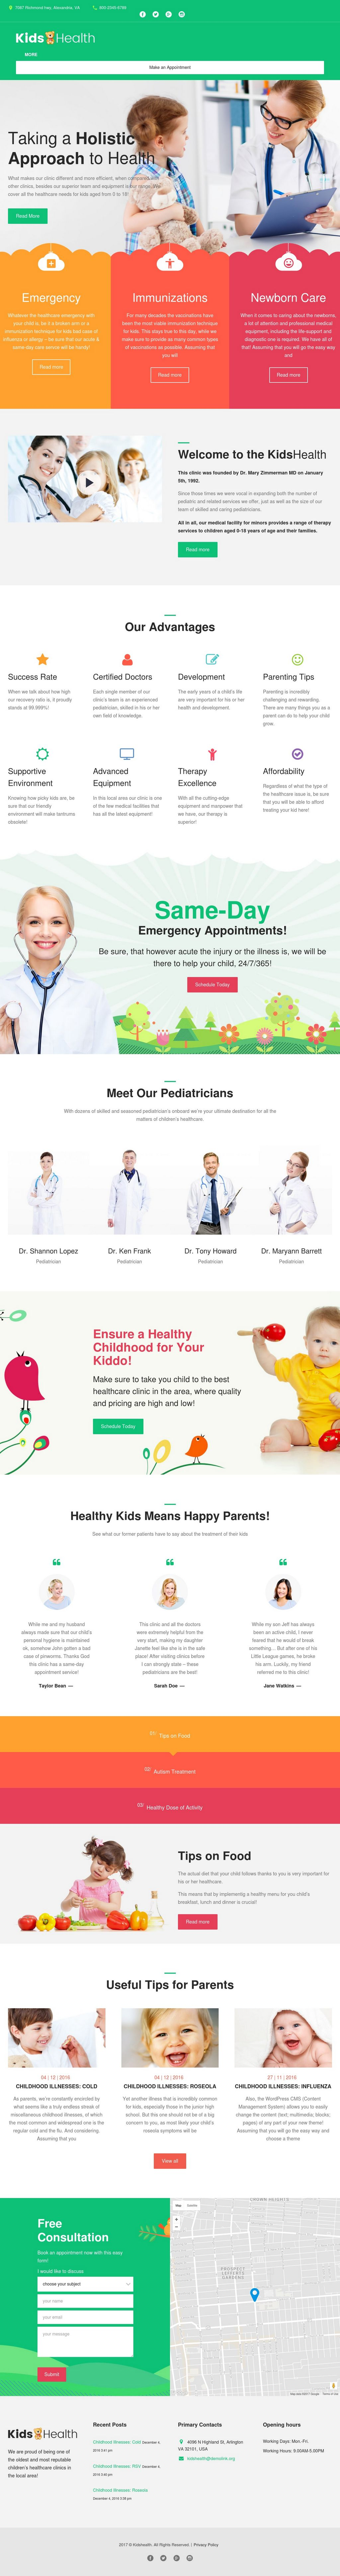 kidshealth wordpress theme templatemonster 01 - kidshealth-wordpress-theme-templatemonster-01